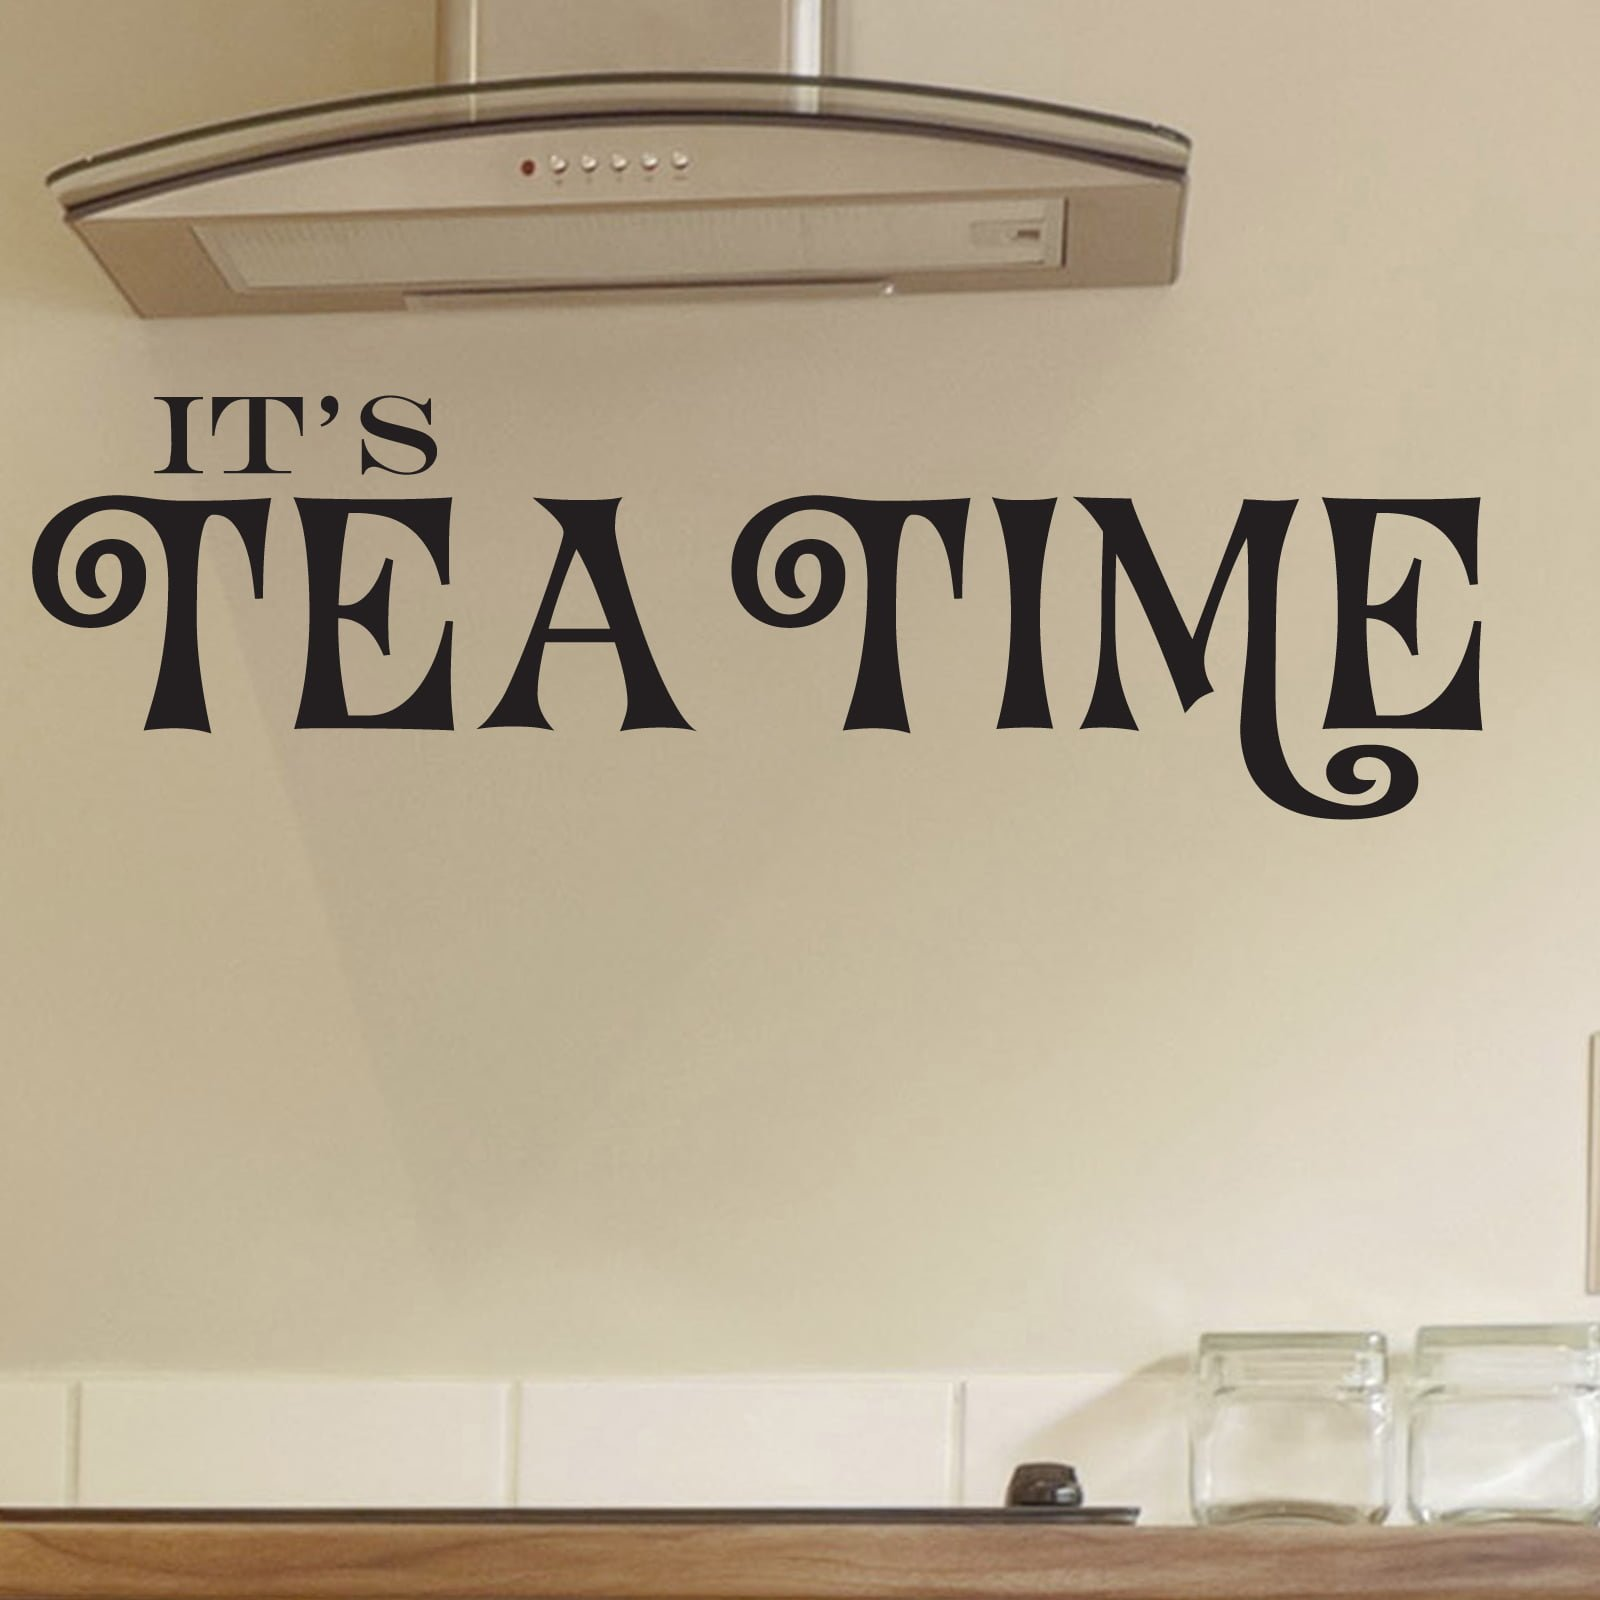 Its tea time kitchen quote wall sticker world of wall for Kitchen quote decals